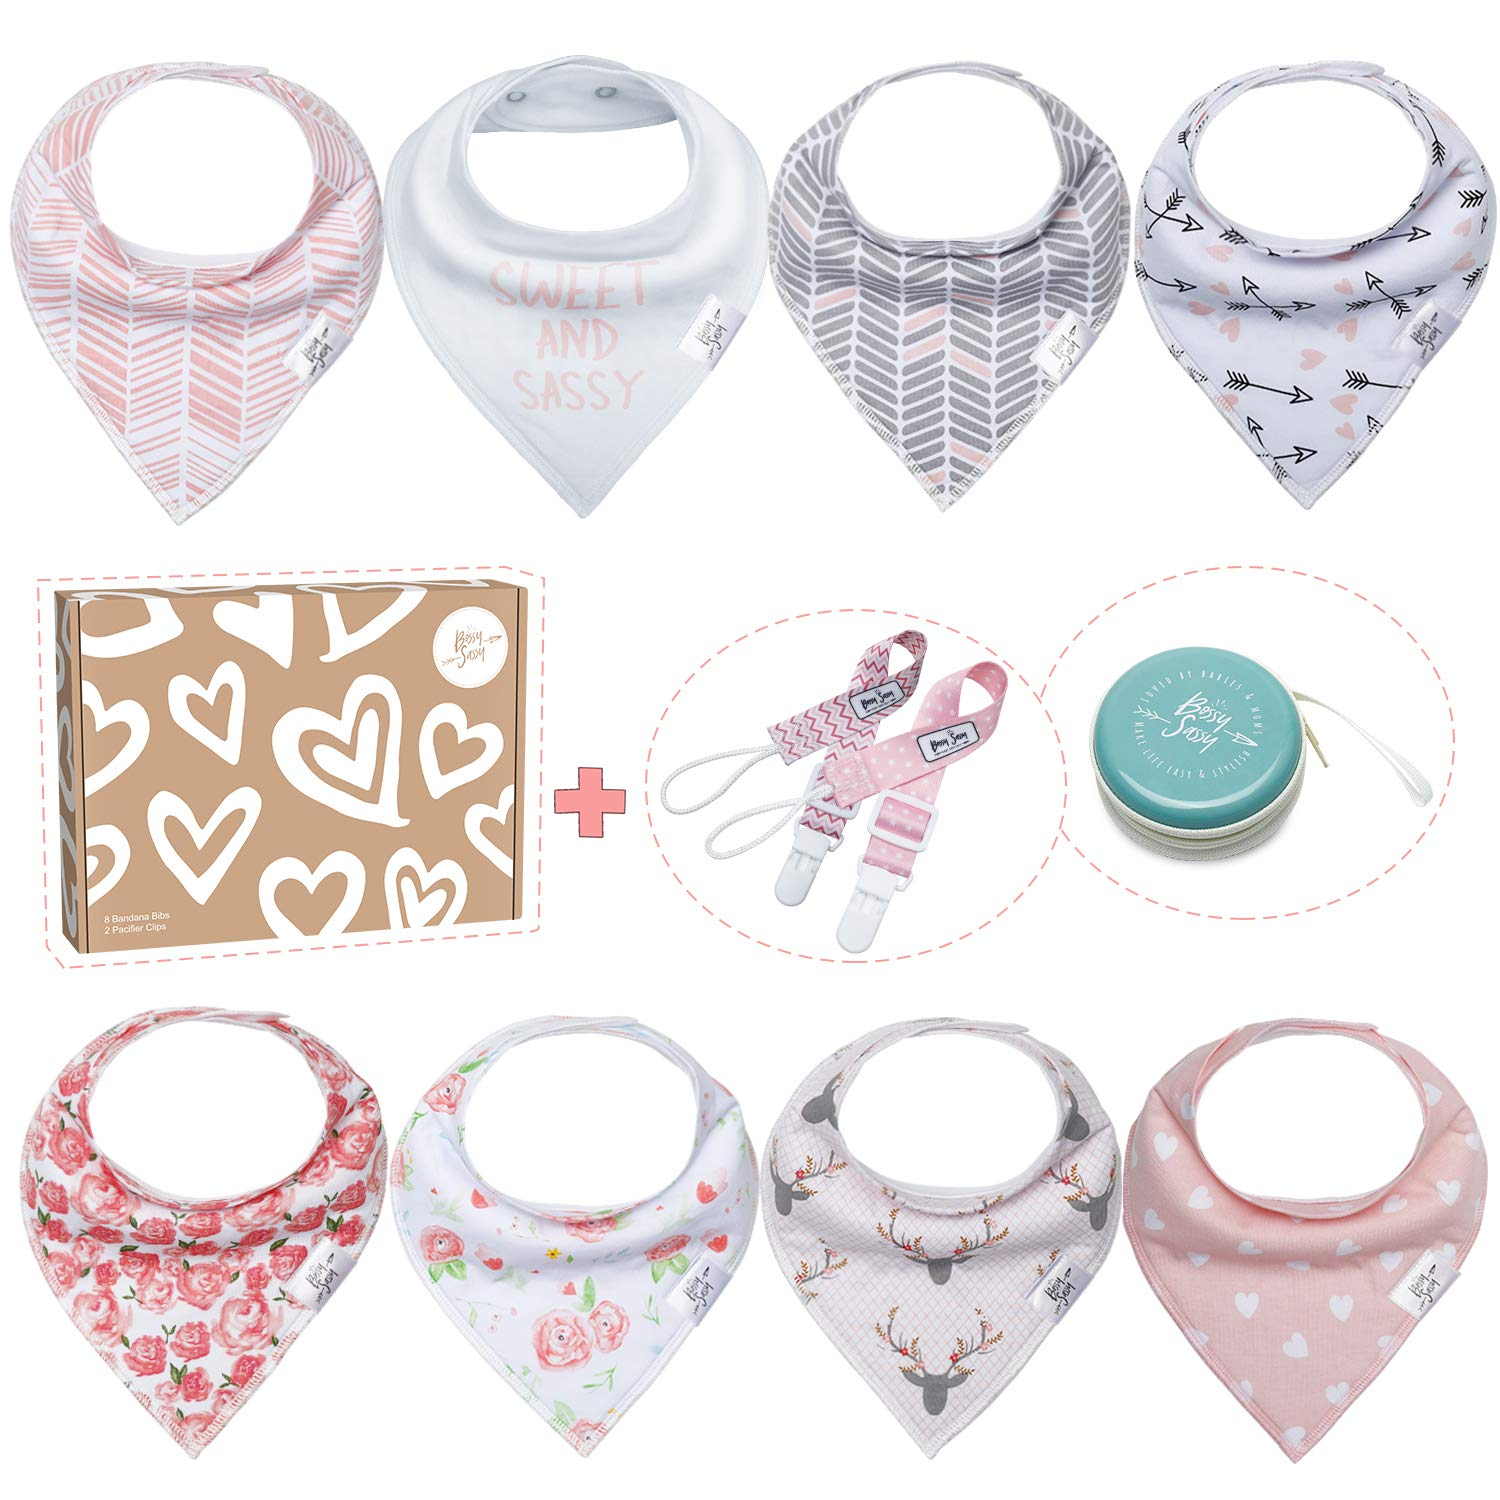 Baby Bibs for Girls by Bossy Sassy - 8 Pack Teething Pink Baby Bandana Drool Bibs + 1 Multifunctional Case, Best Baby Shower/Registry Gifts Set for Girls 0-24 Months by Bossy Sassy